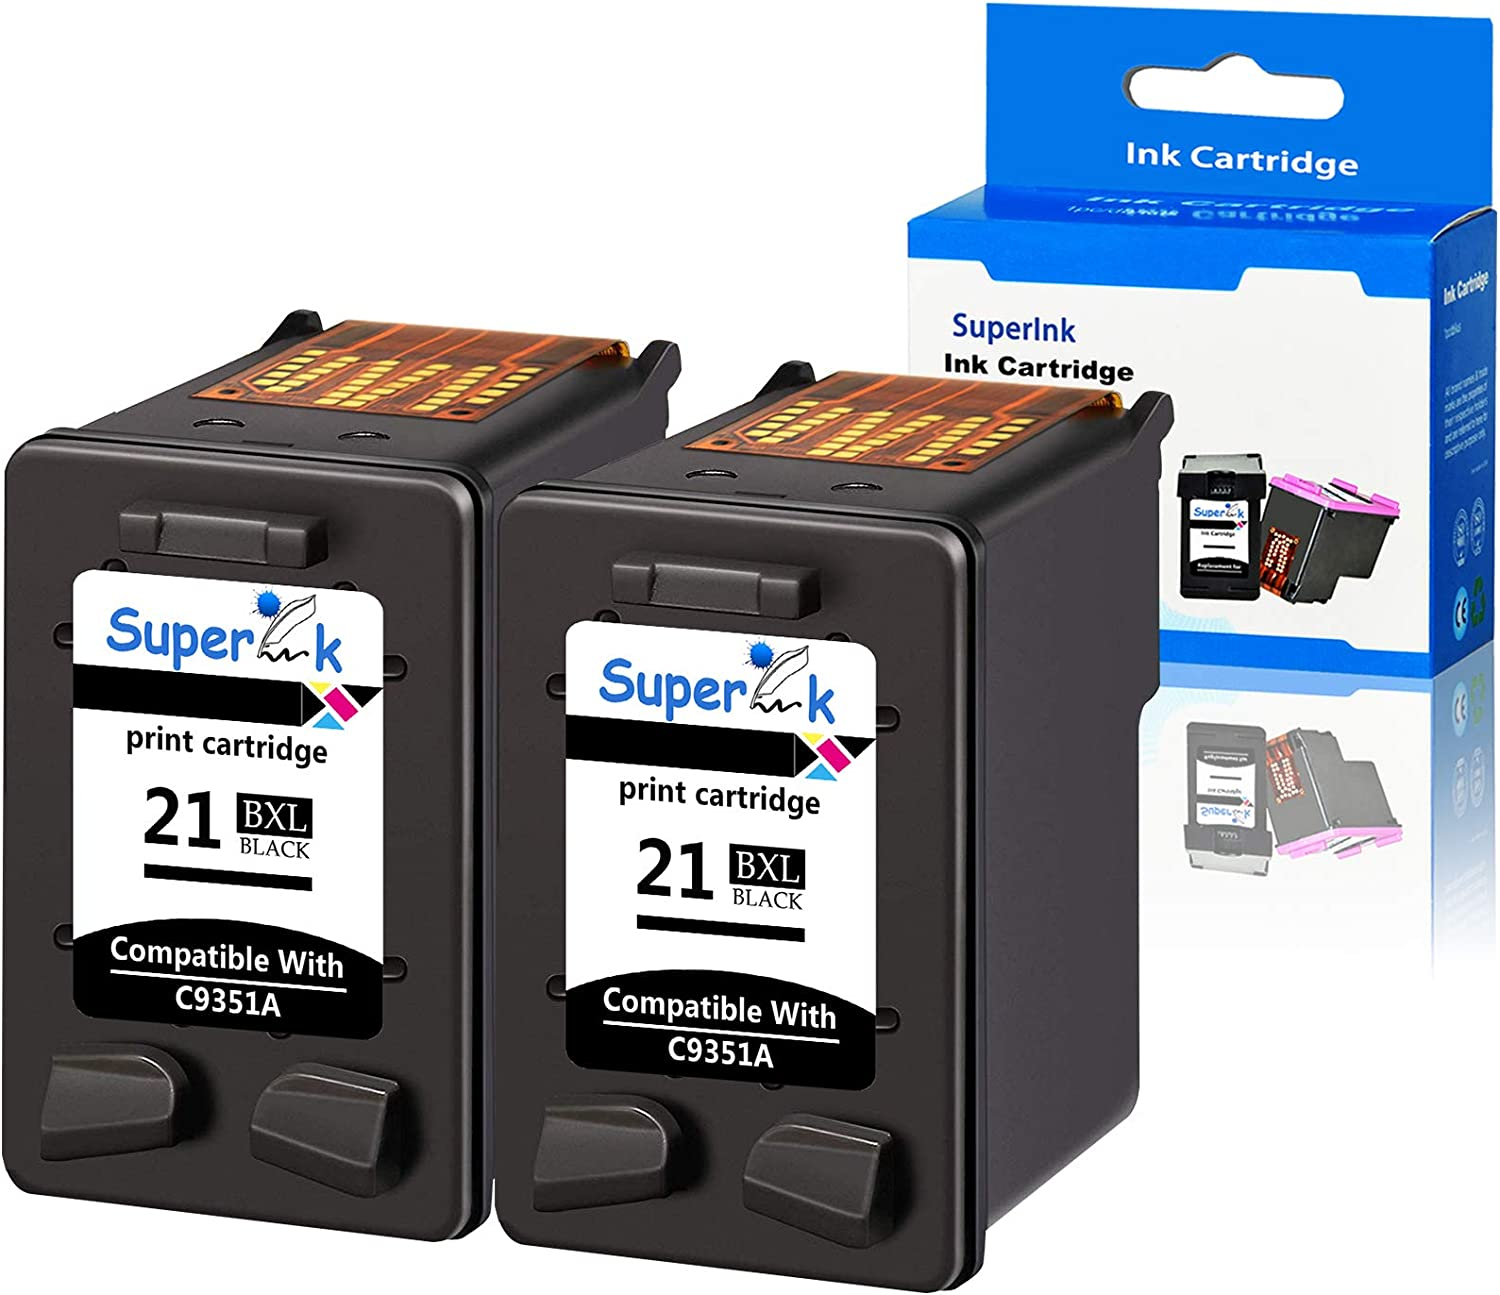 SuperInk 2 Pack 475 Pages High Yield C9351A 21XL Compatible for HP 21 Remanufactured Ink Cartridge DeskJet D1320 D1330 D1341 D1360 D1368 D1400 D1415 D1420